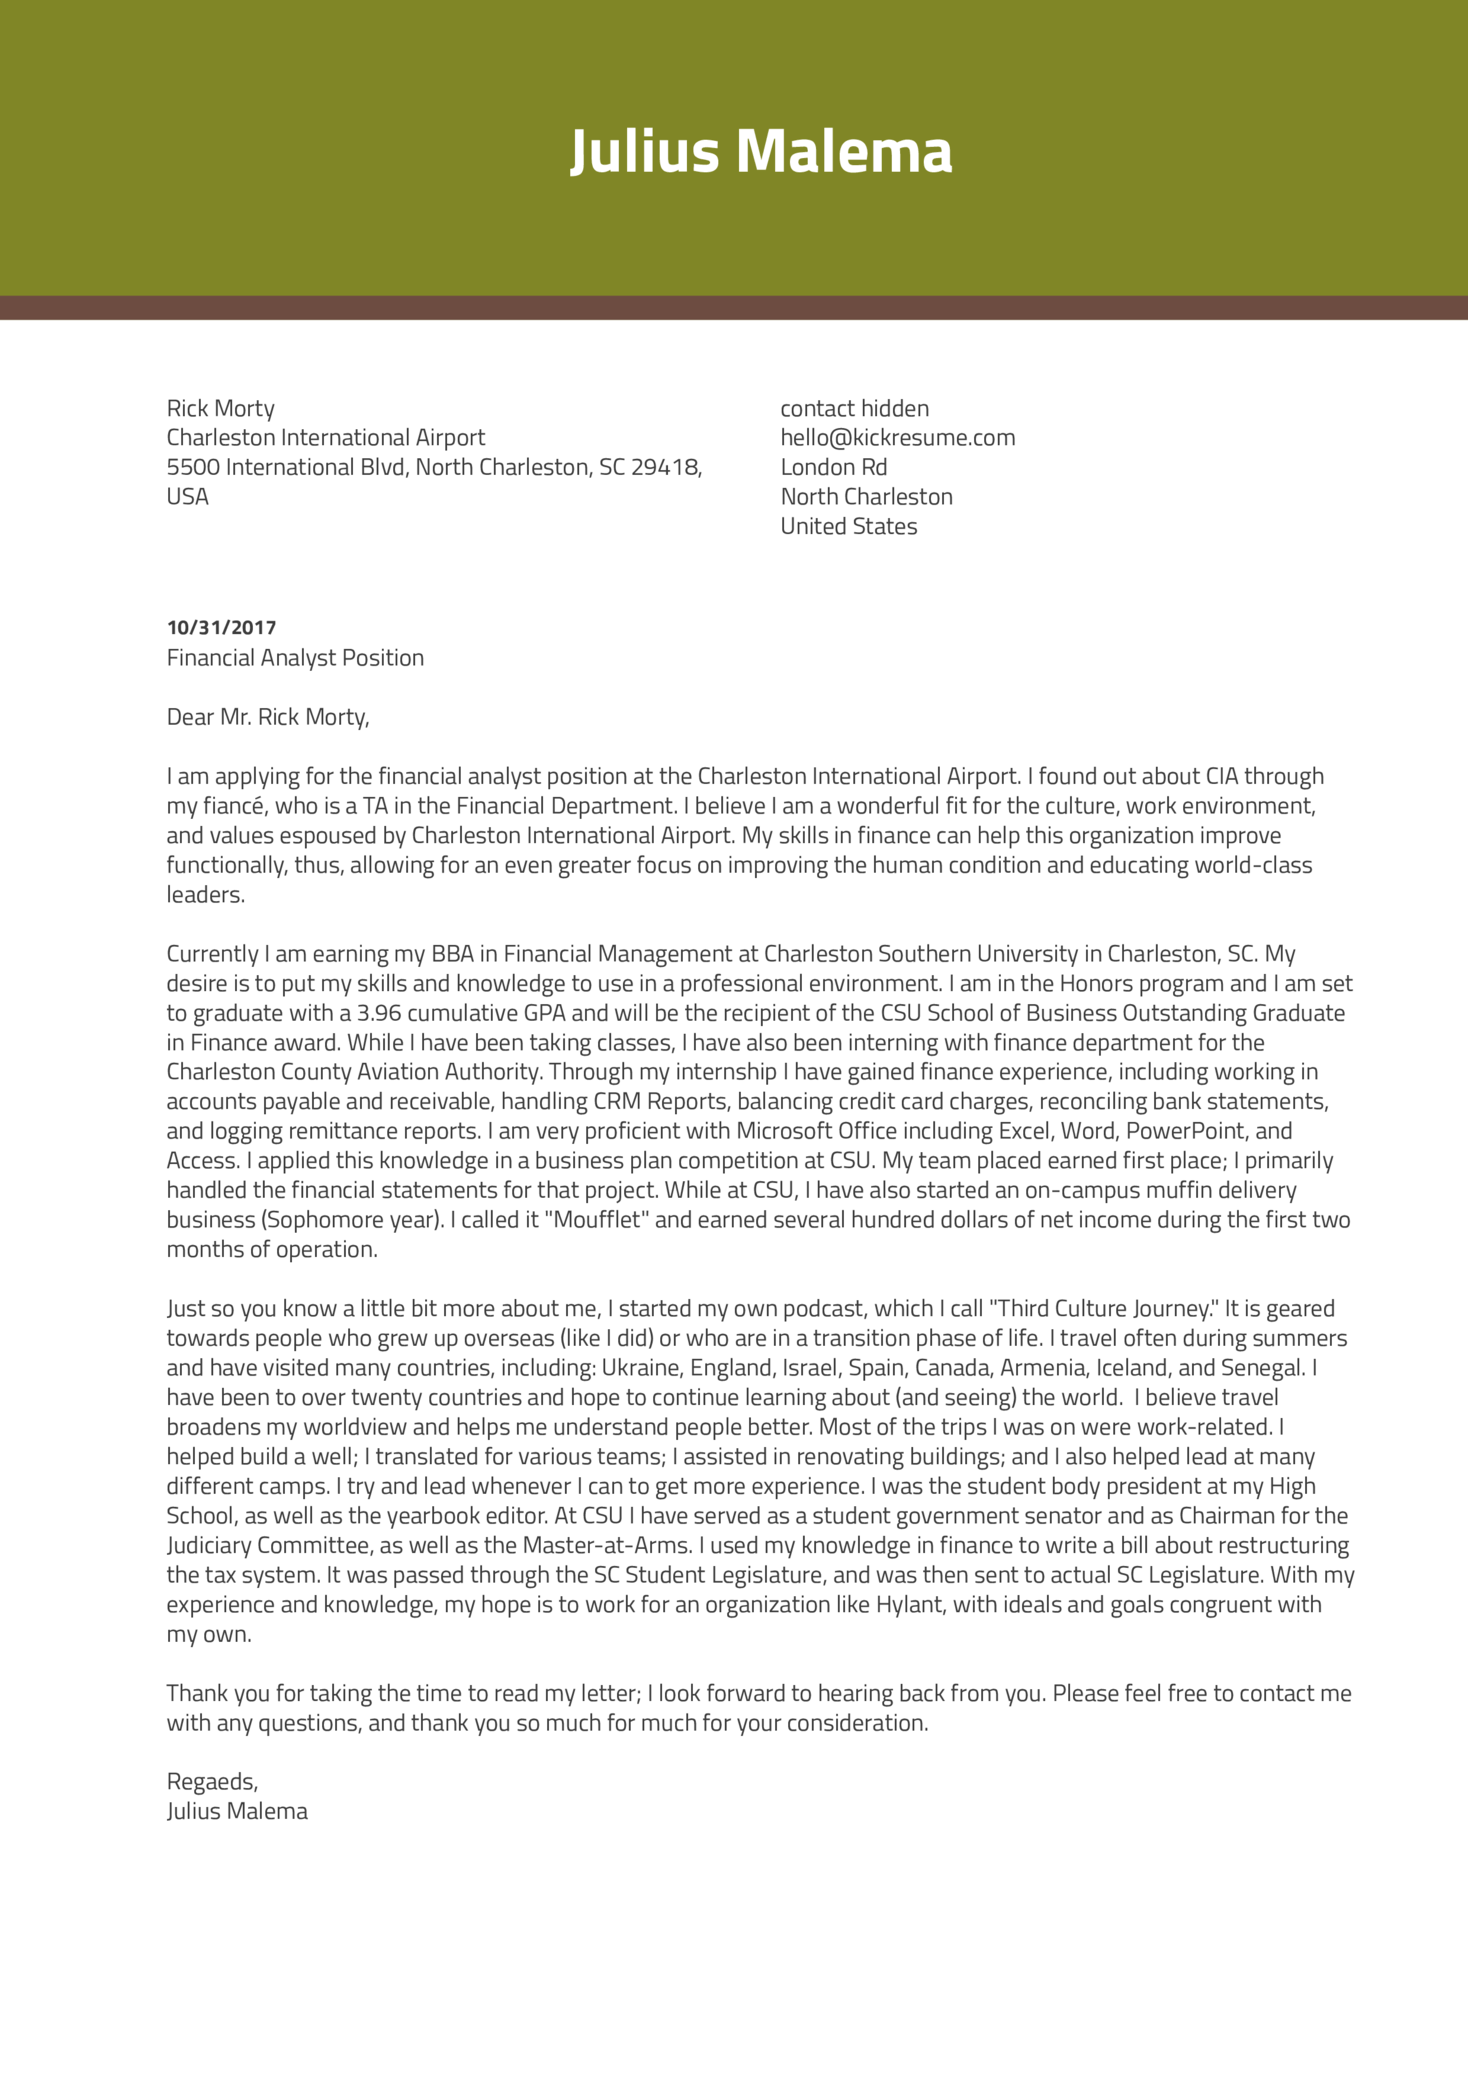 Finance Intern Cover Letter Example